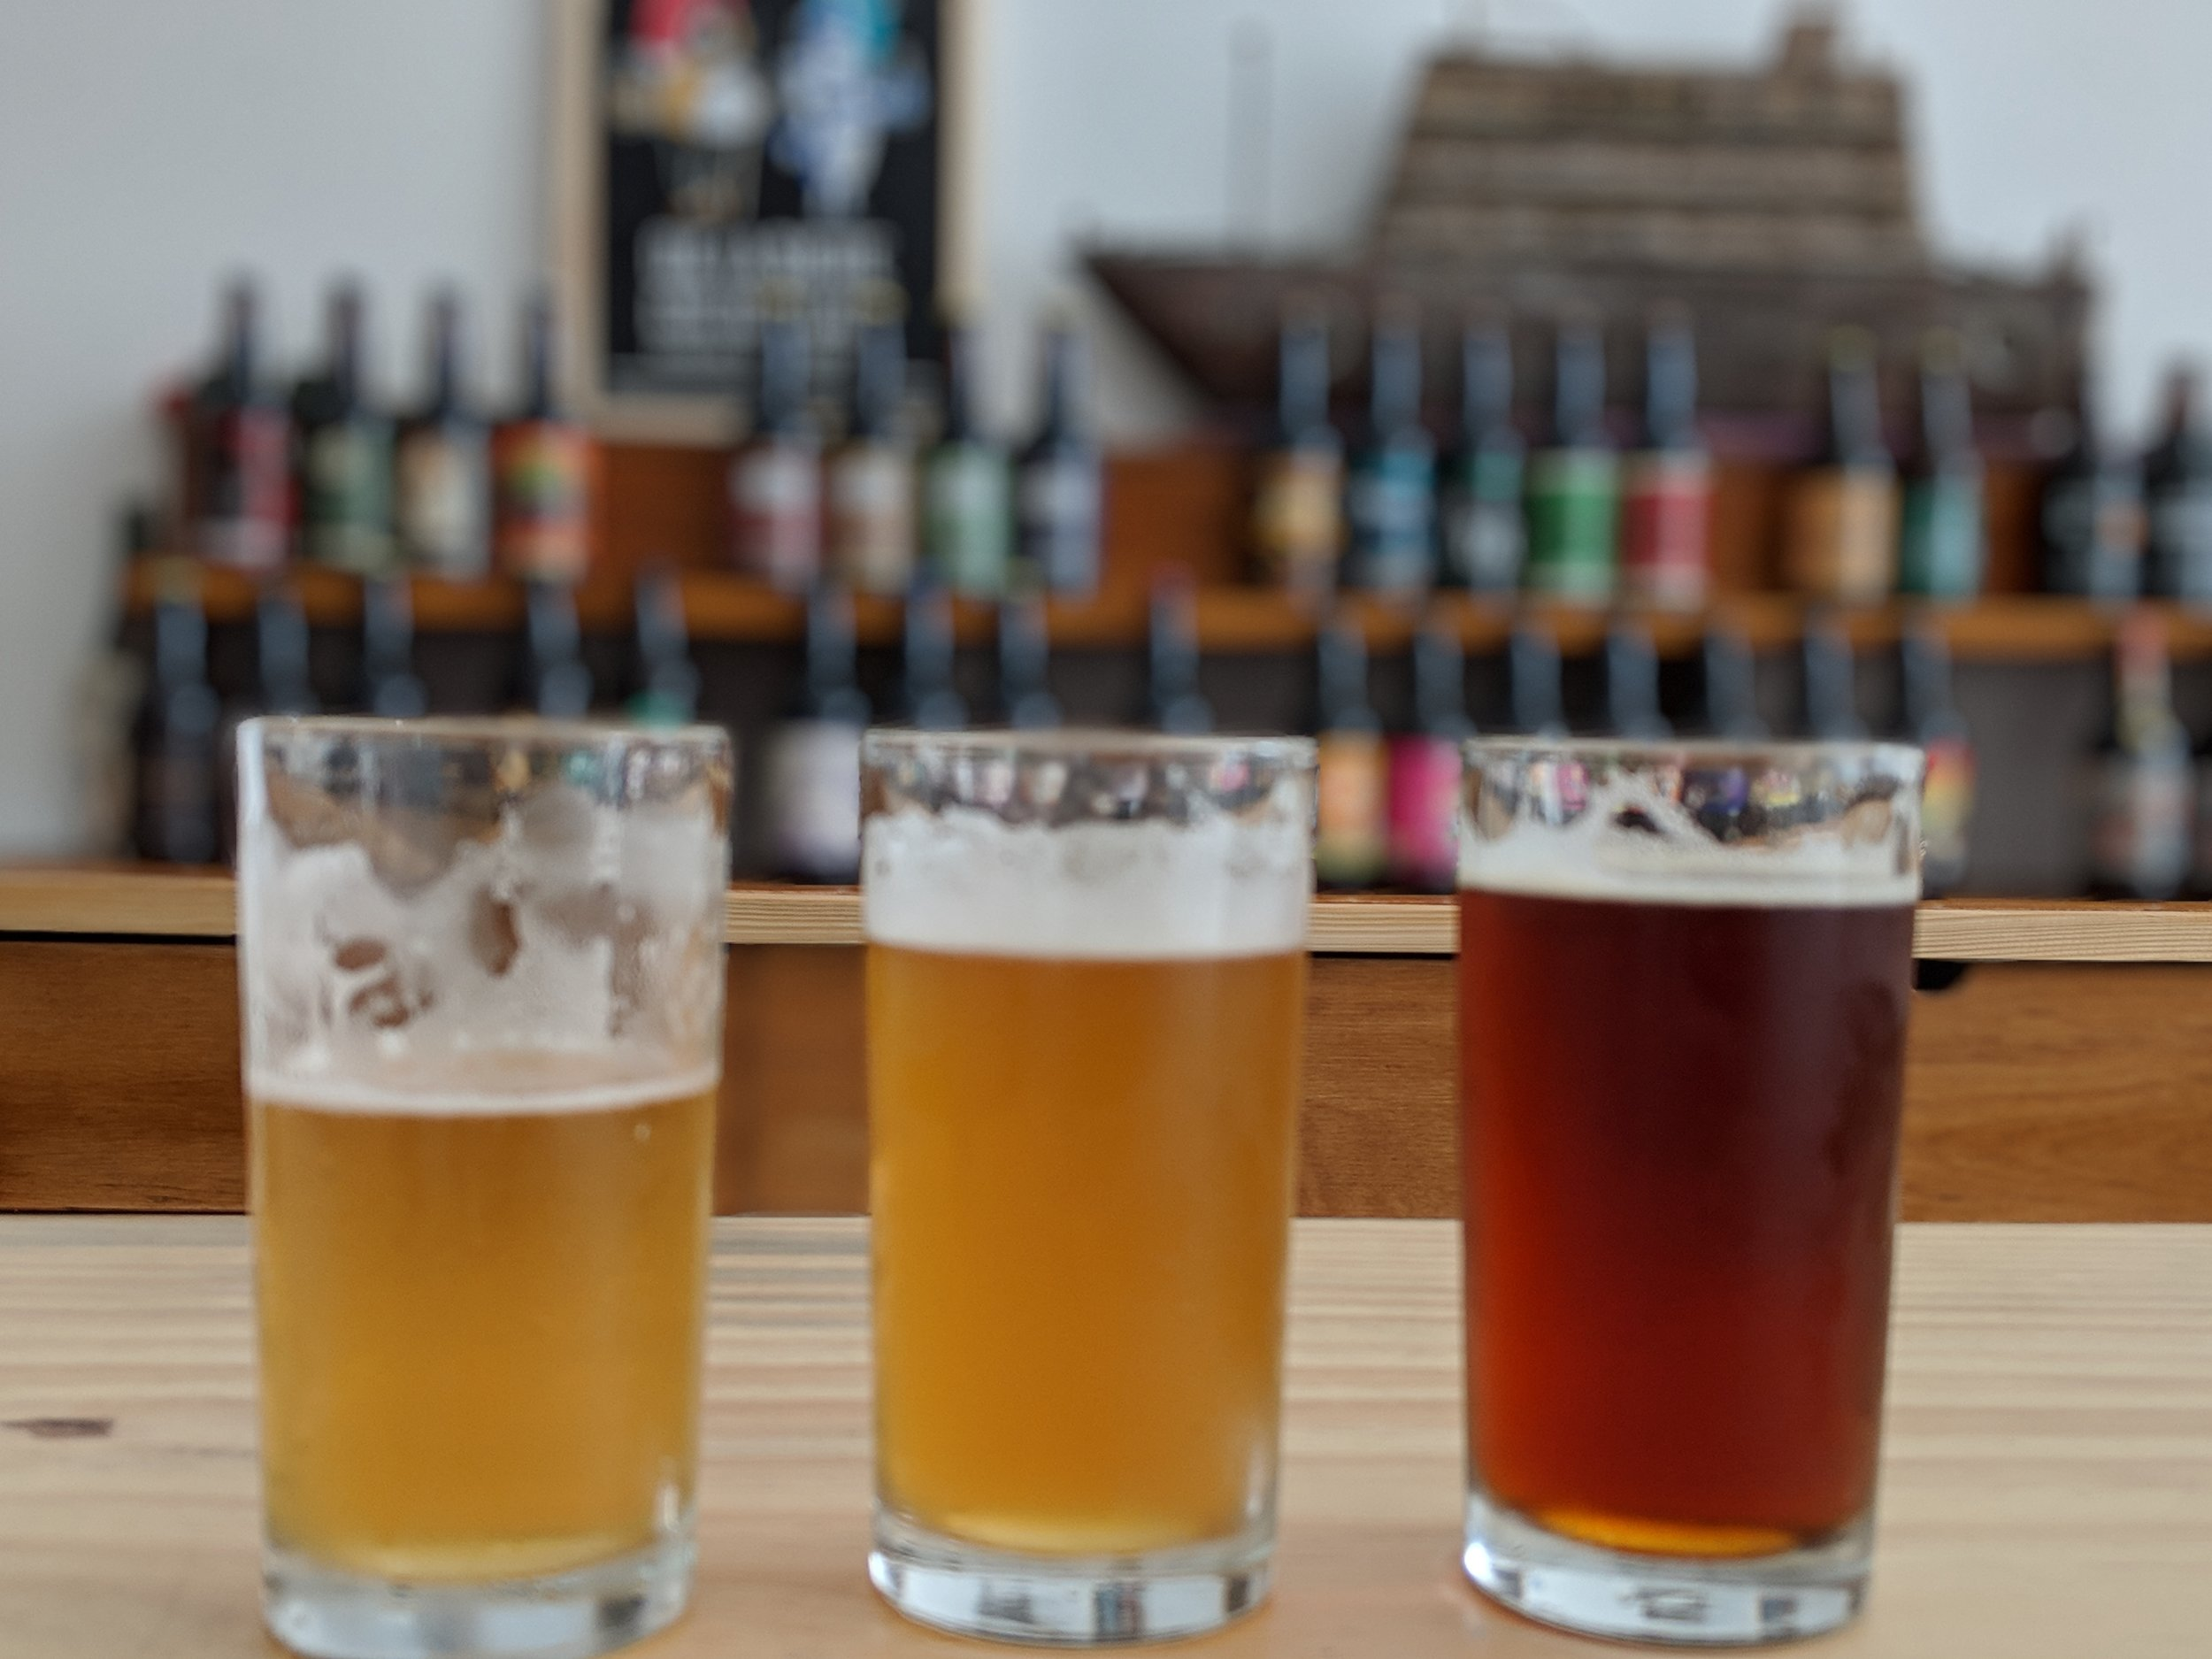 Uruguayan craft beer. Things to do in Montevideo